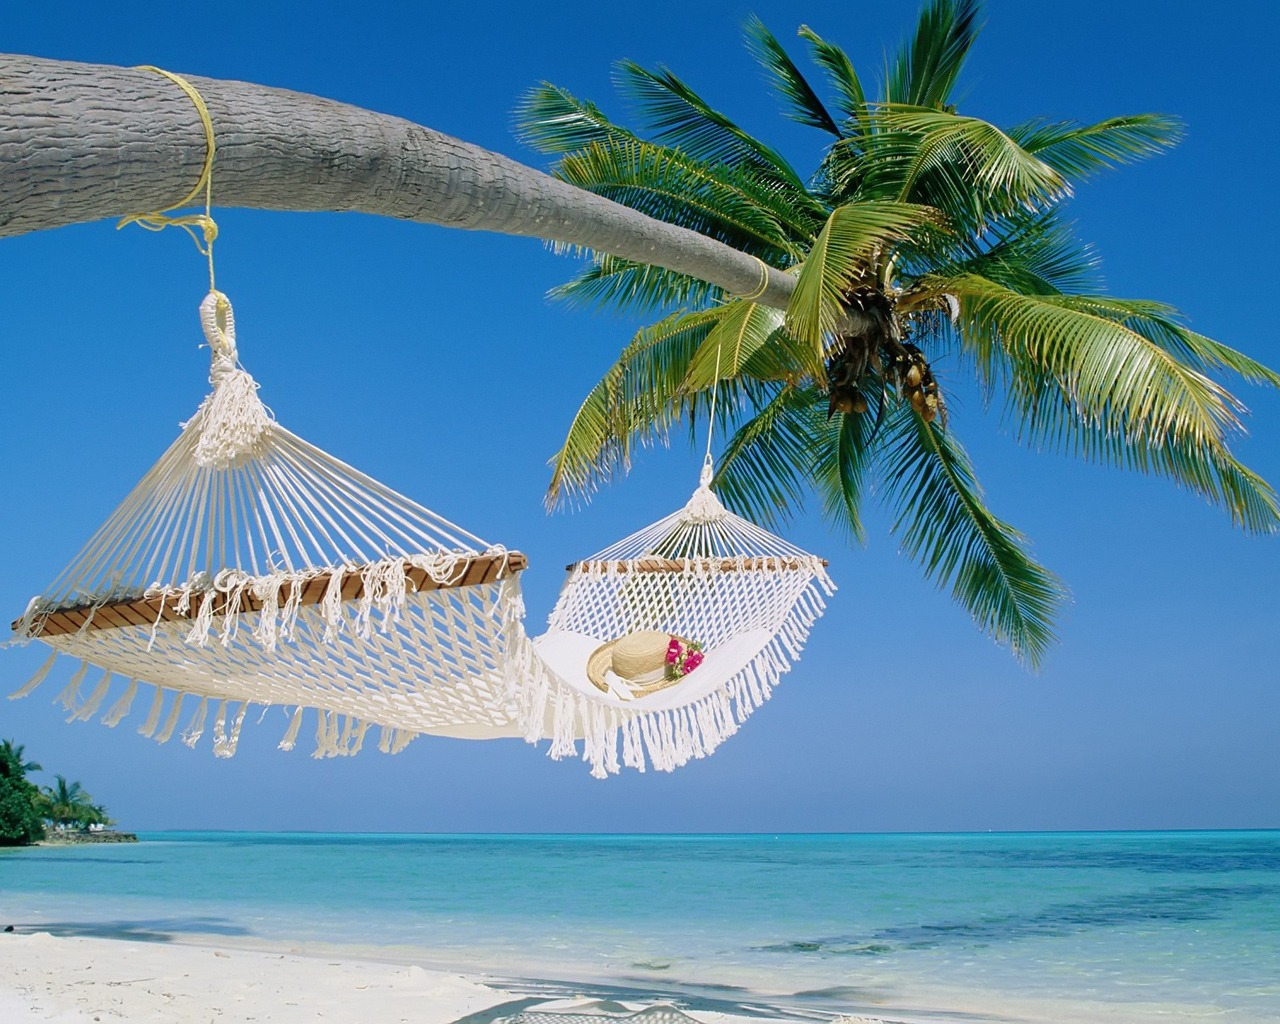 Hammock Wallpaper Beaches Nature Wallpapers in jpg format for free